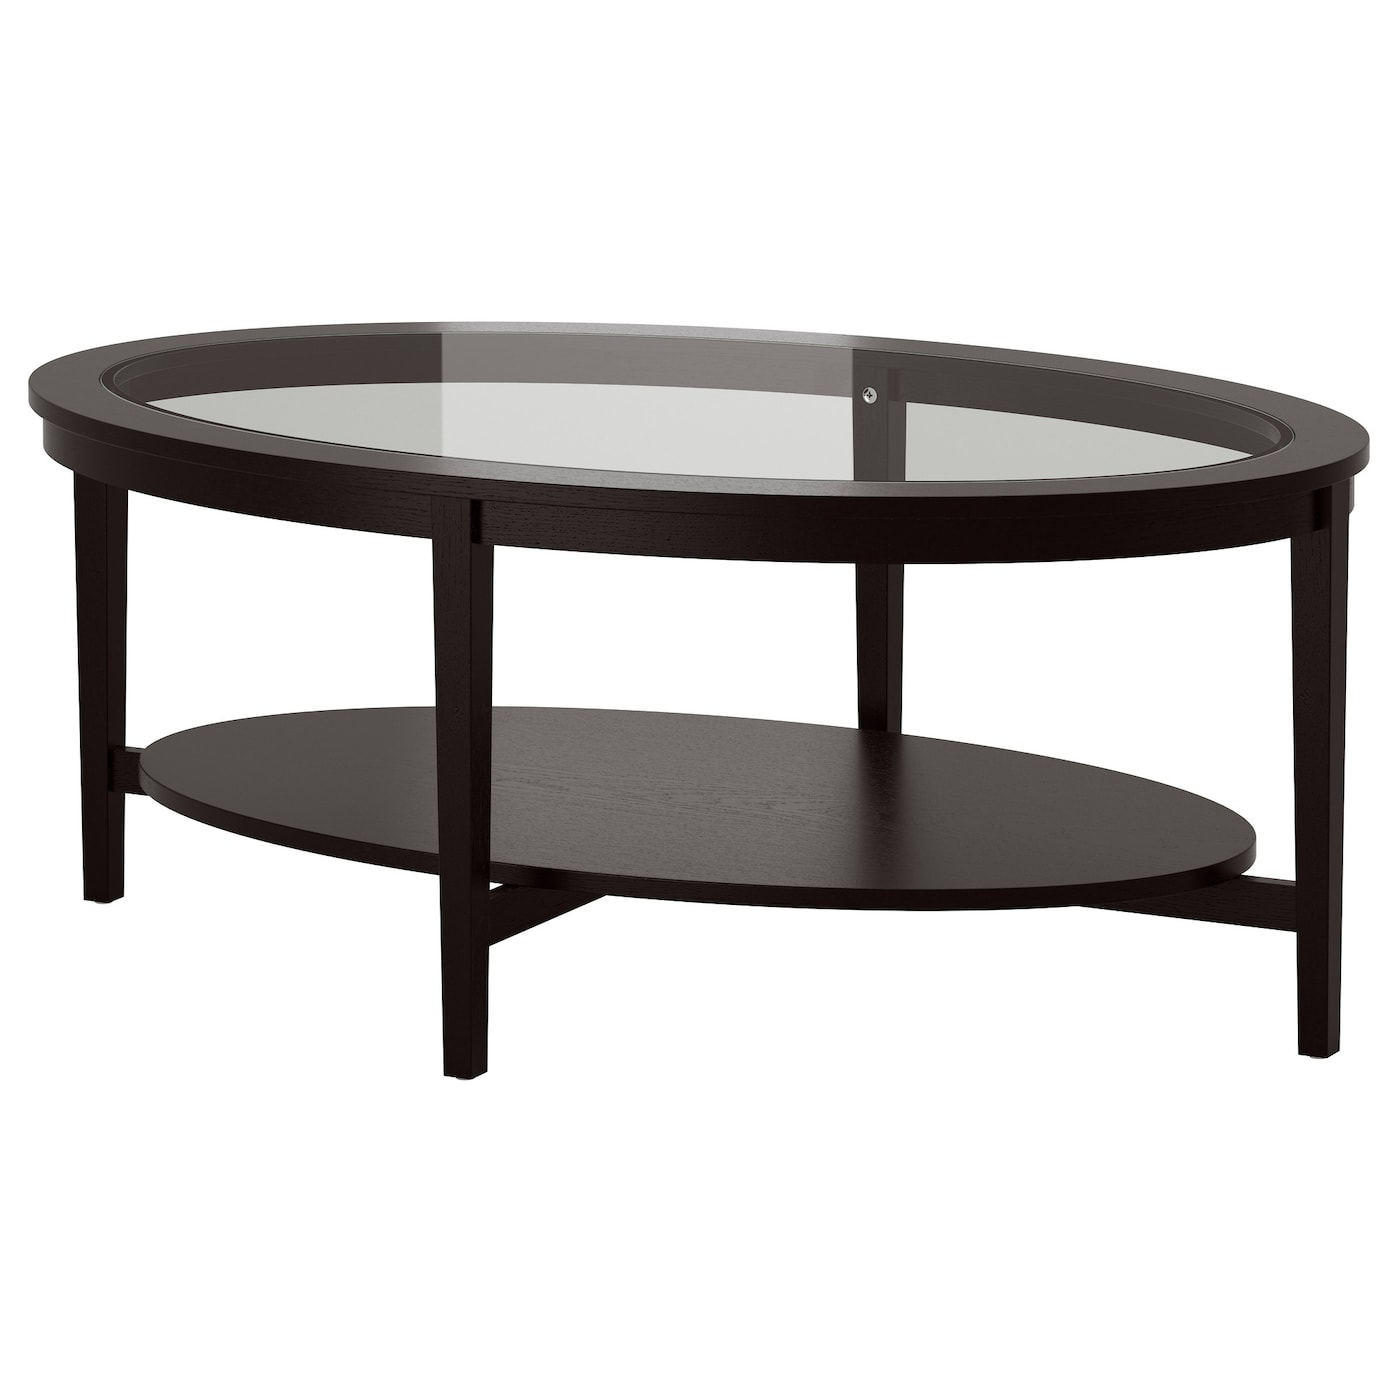 Malmsta table basse brun noir 130 x 80 cm ikea - Ikea table noire ...